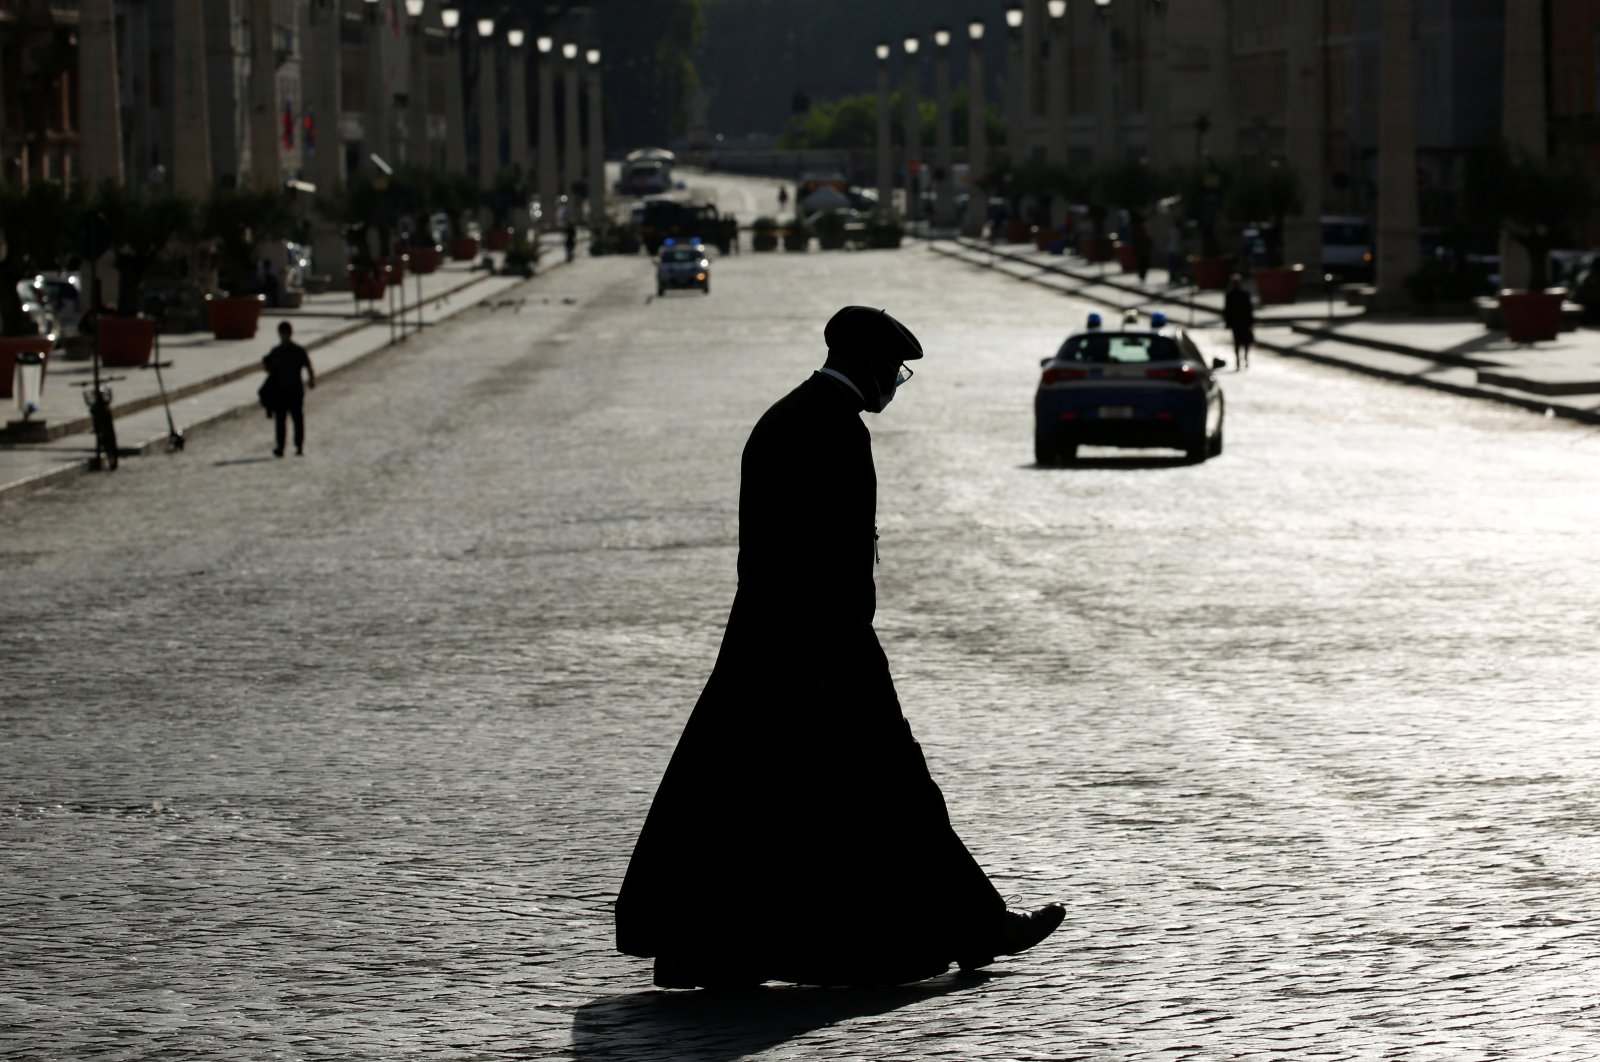 A priest is silhouetted along Via della Conciliazione street, near Vatican City, at the first weekly general audience led by Pope Francis, open to the public for the first time since the global outbreak of COVID-19, in Rome, Italy, Sept. 2, 2020. (Reuters Photo)